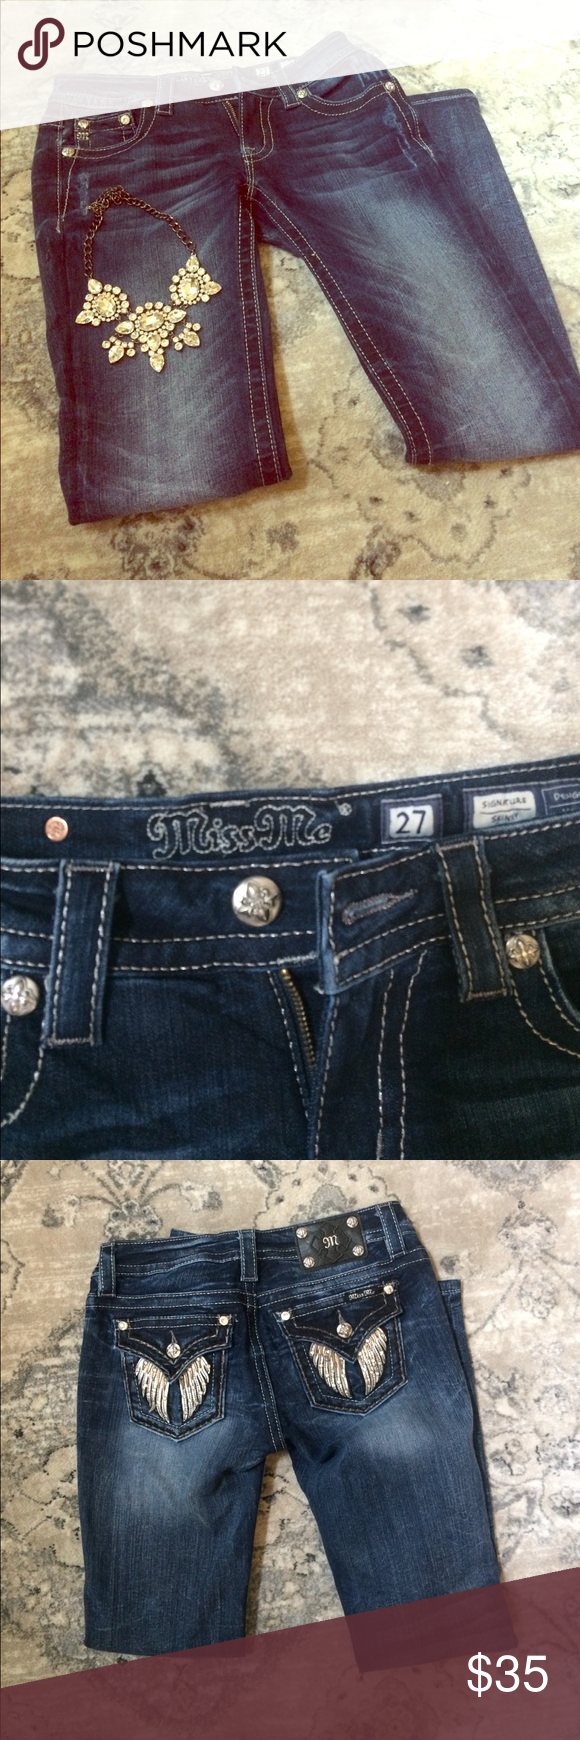 """Miss Me Signature Skinny Jeans Excellent condition, angel wing accents on back pocket, 16"""" waist, 30"""" inseam, 8.5"""" rise Miss Me Jeans Skinny"""